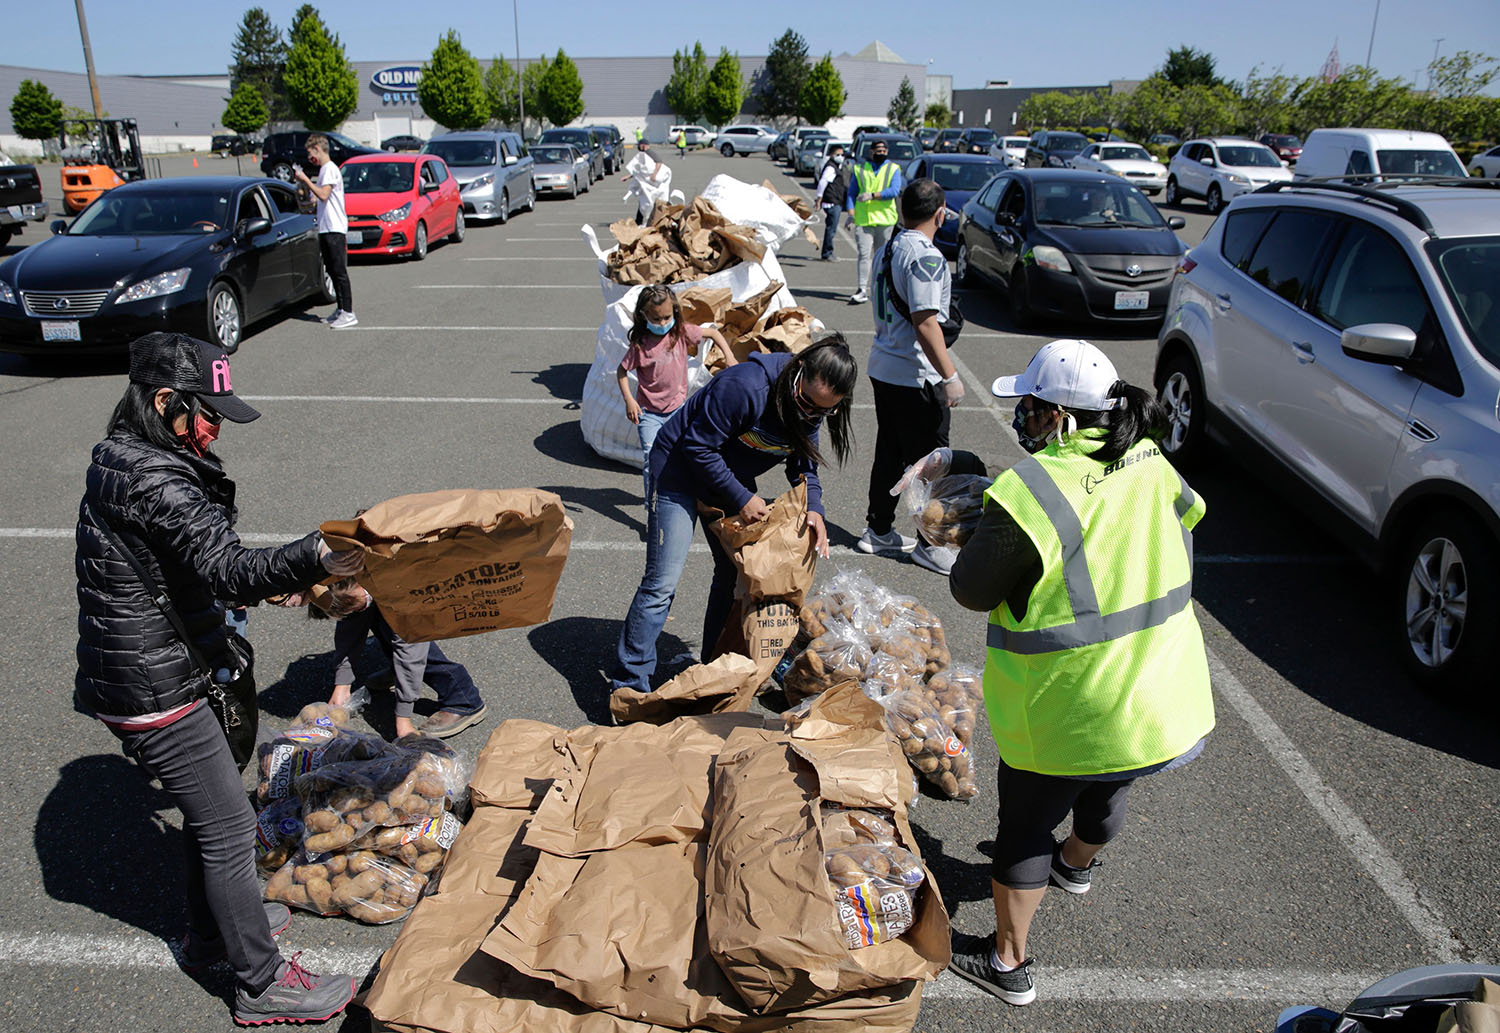 Volunteers hand out excess potatoes donated by Washington farmers as a result of the food-service industry slowdown during the coronavirus pandemic in Auburn, Washington, on May 7.